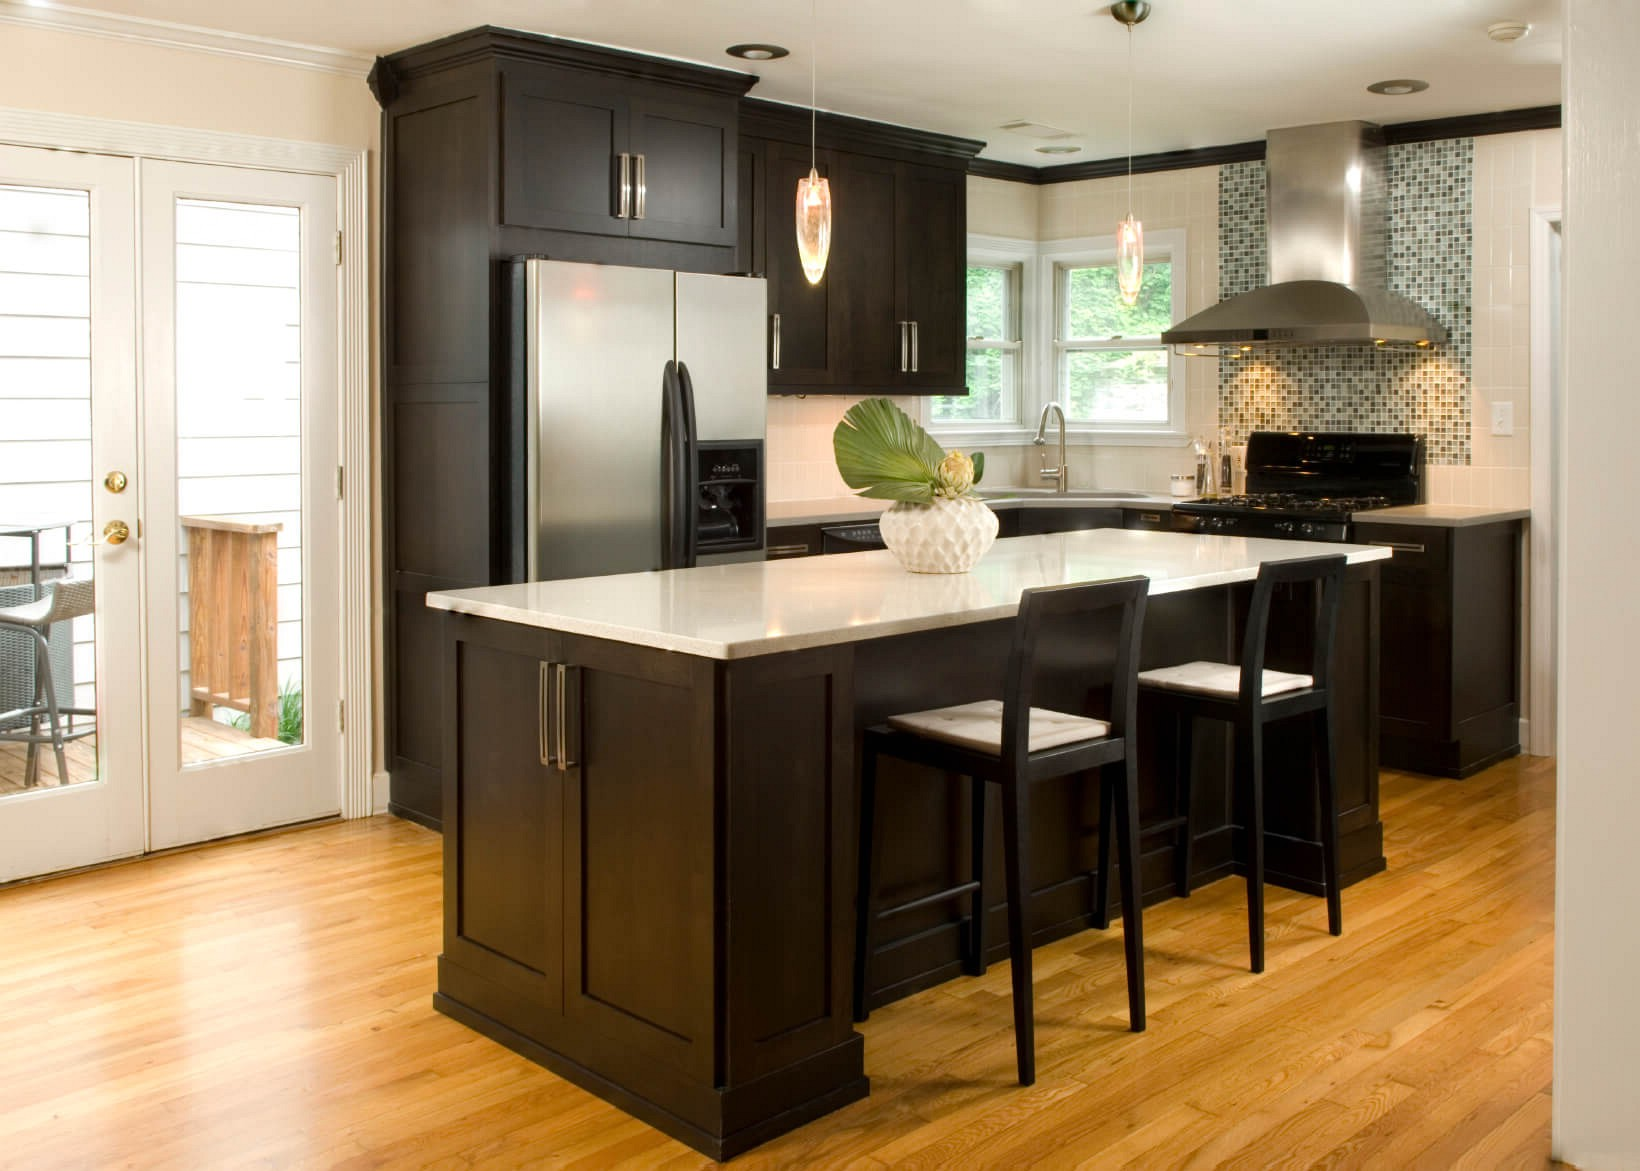 Beau Small Kitchen With Dark Shaker Kitchen Cabinetry. | Photo Source:  Desireerover.com